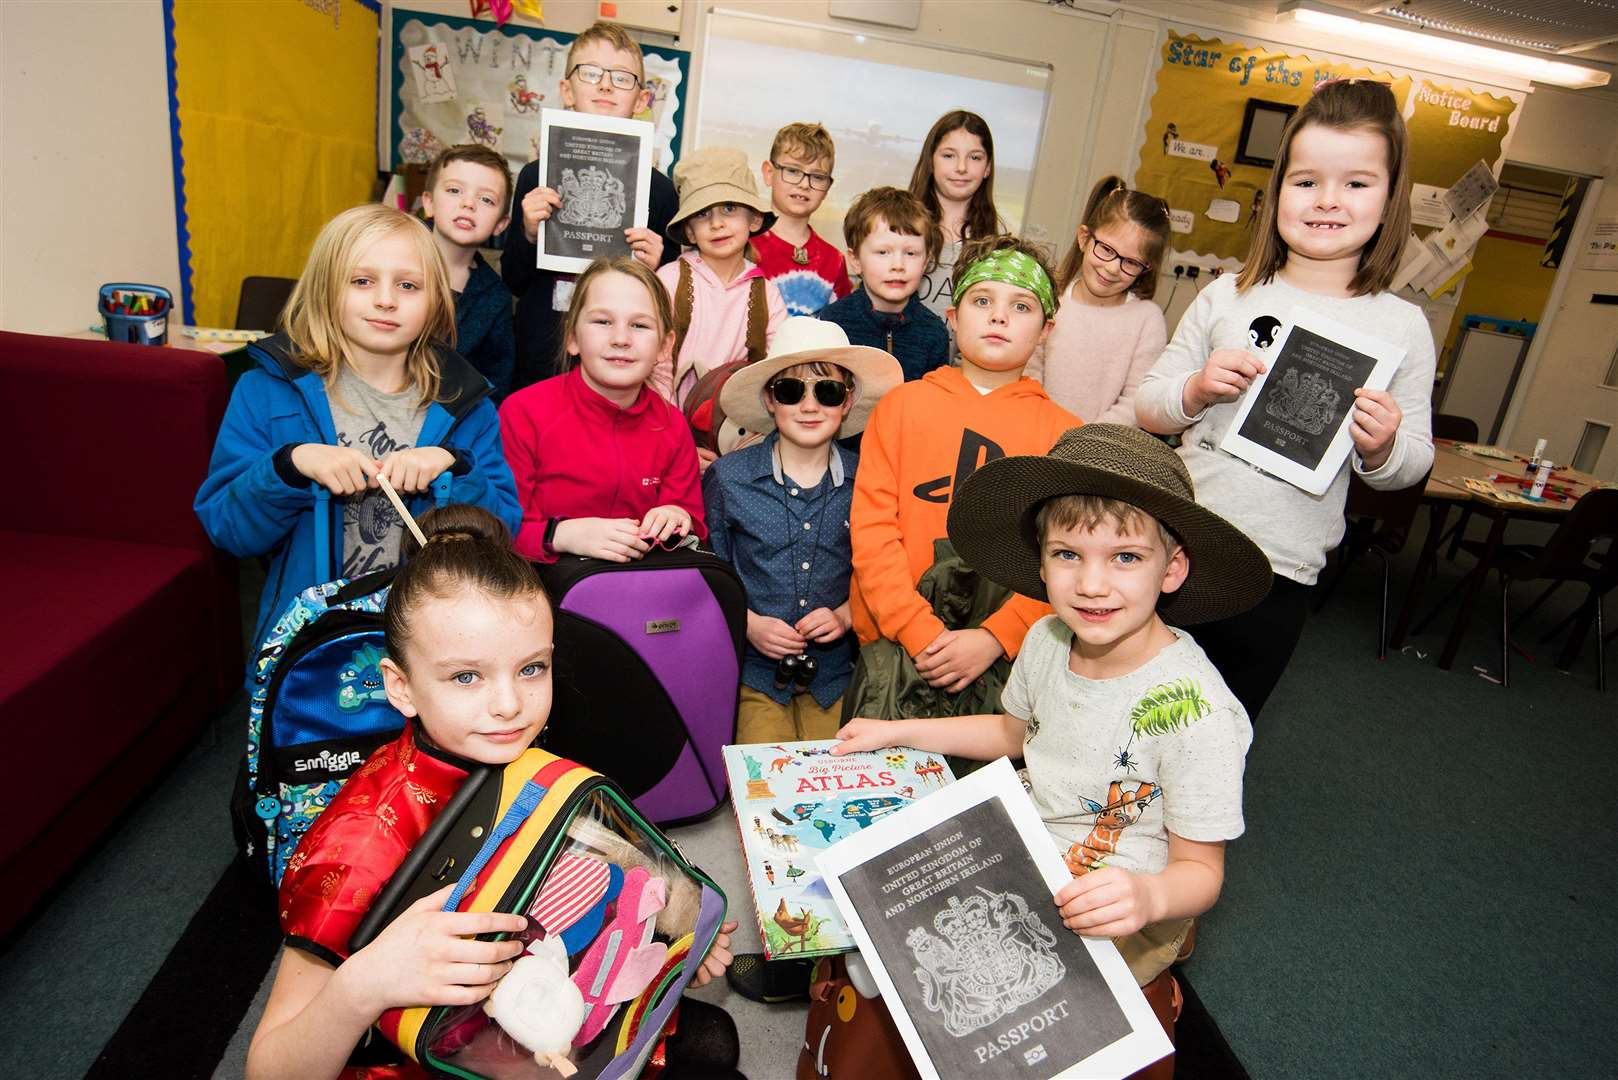 Ixworth Primary School simulated an airport event where children arrived at school with a suitcase and suitably dressed for a special destination. Picture: Mark Westley.